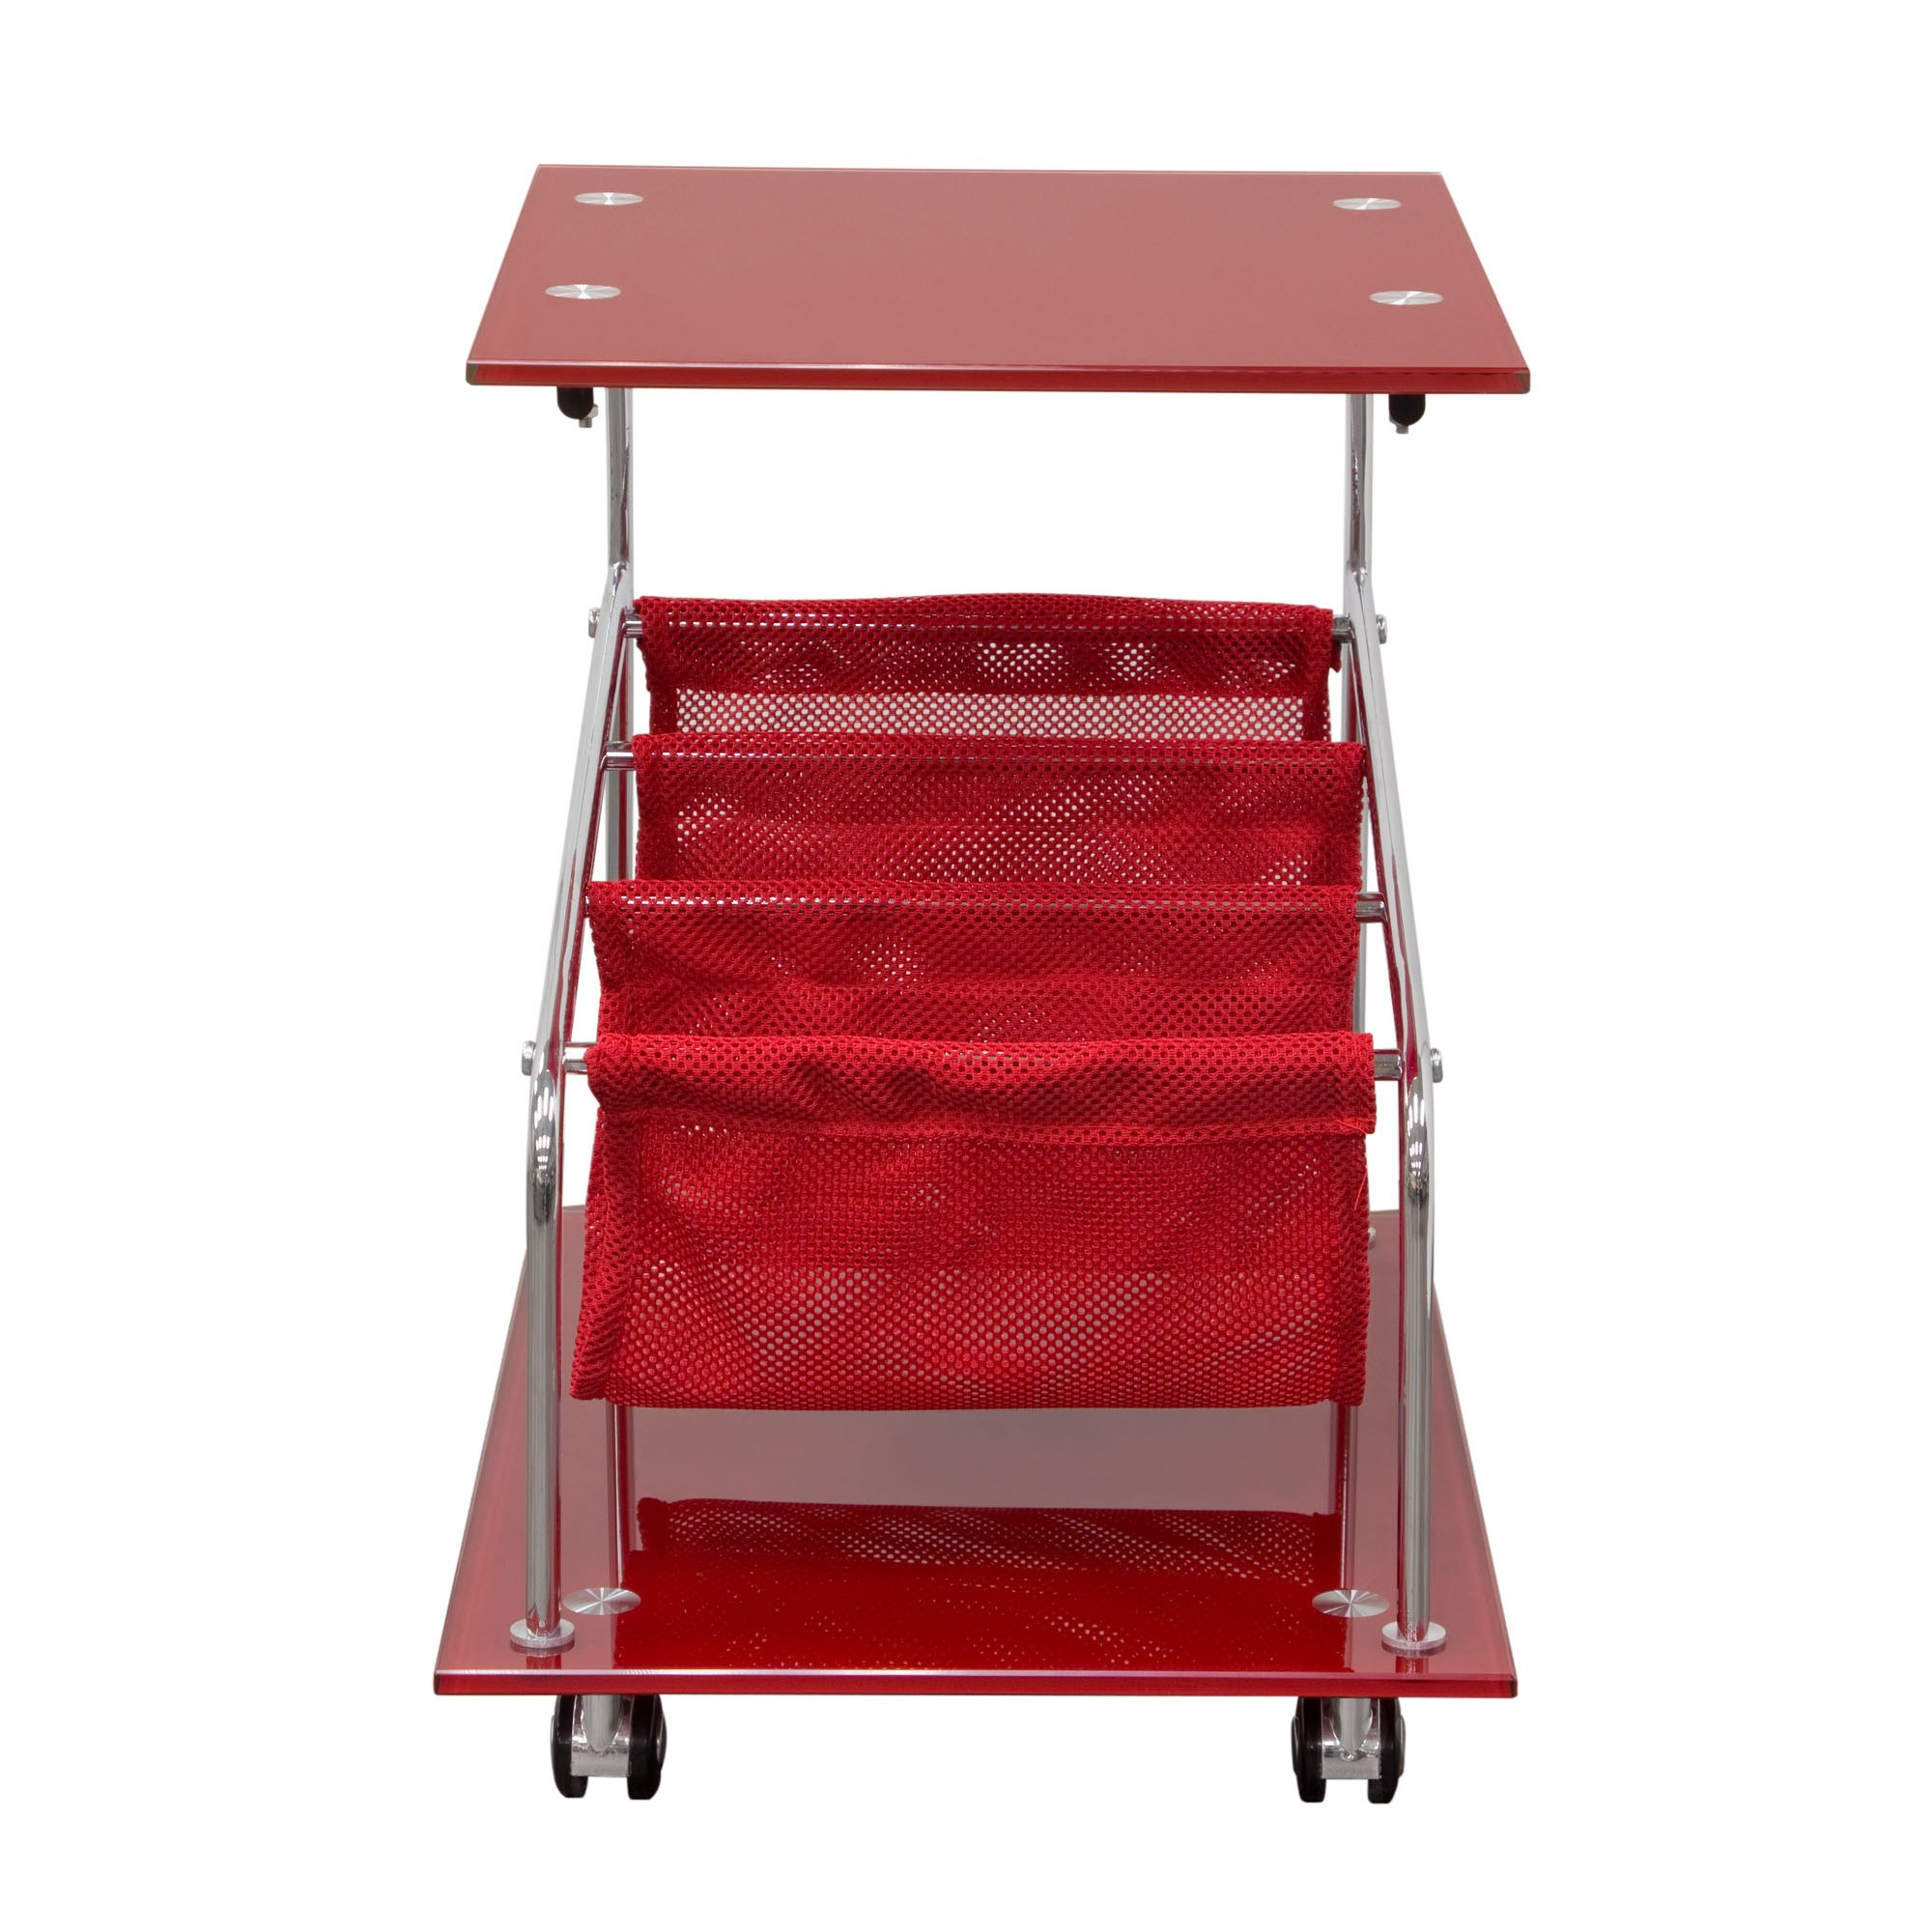 Rocket Castered Accent Storage Table with Red Glass Top  : ROCKETETRE from www.madisonseating.com size 2000 x 2000 jpeg 318kB